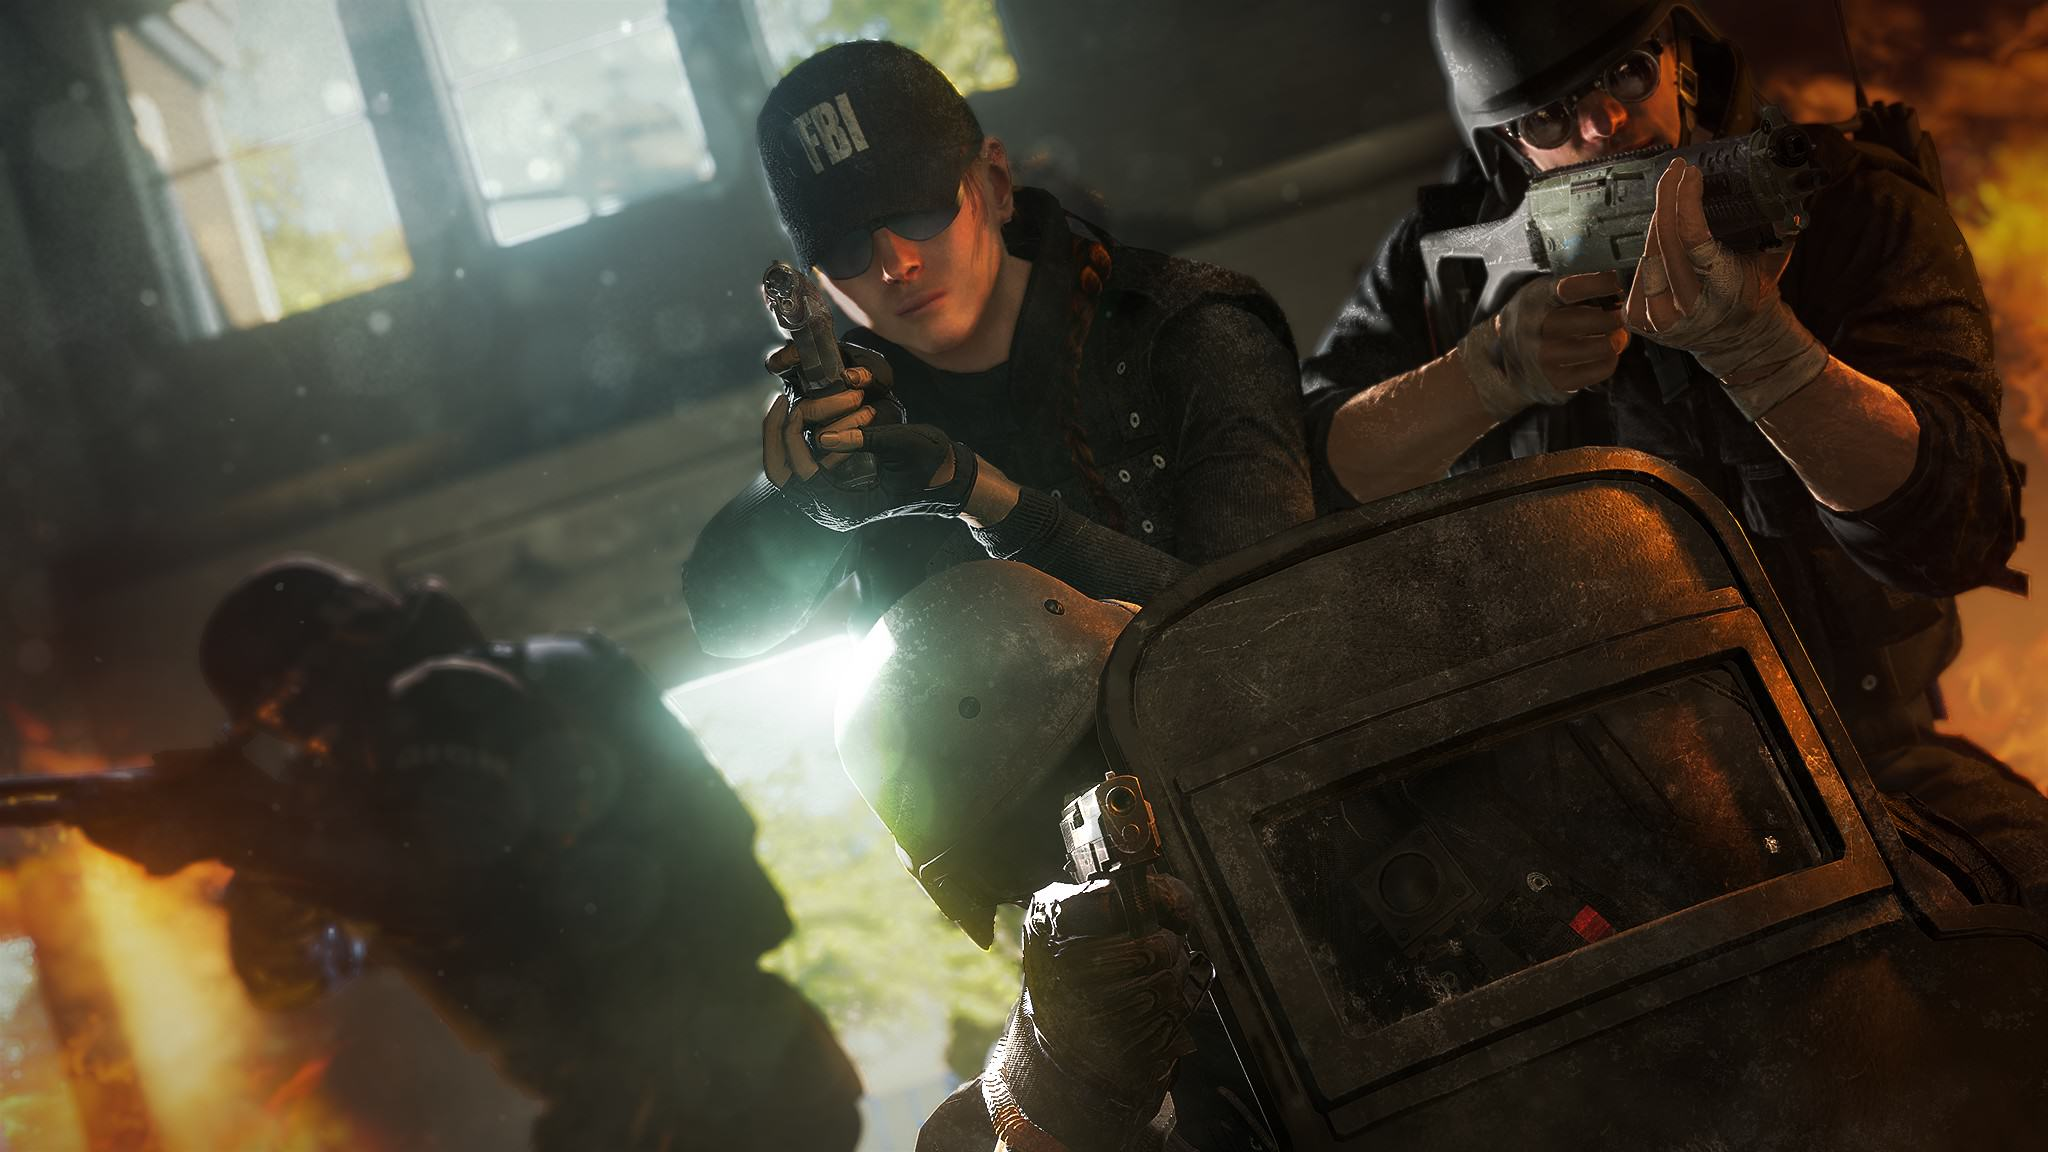 Rainbow Six Siege Is Excellent Fun With Friends   When It Works R6S  S09 Tight 197396